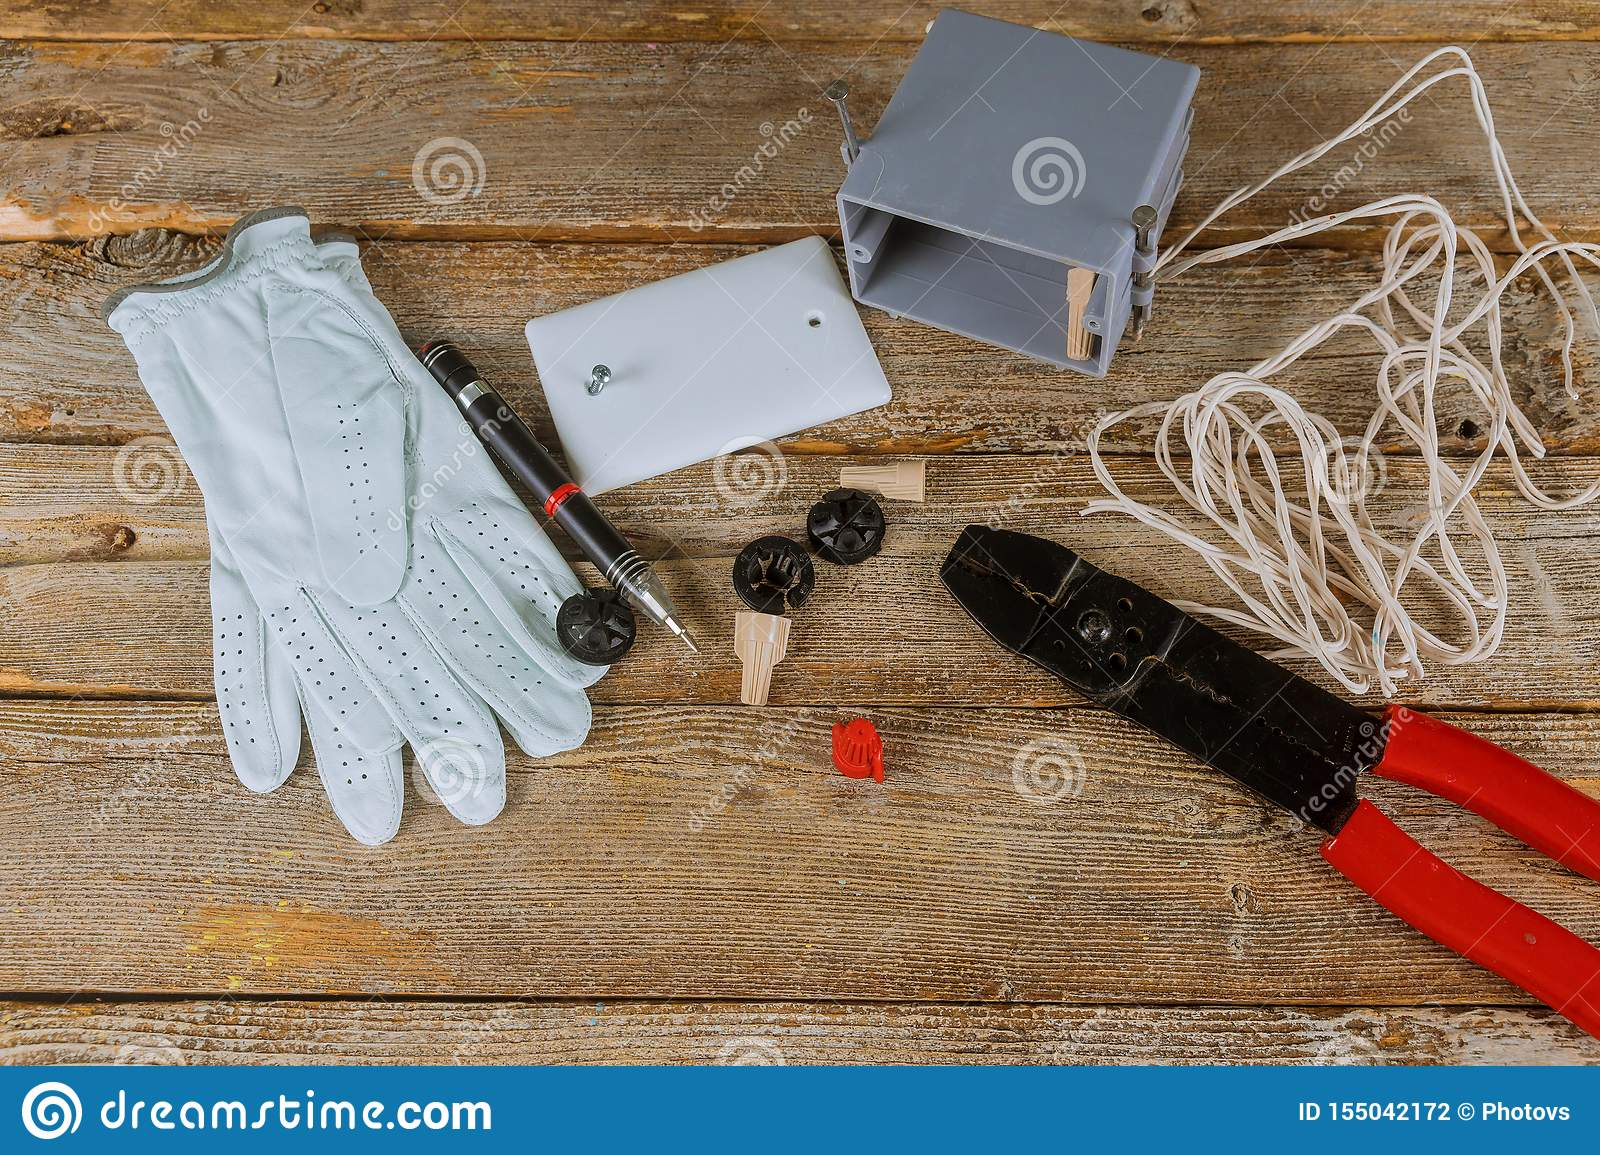 Electrical wires tying cables cutter pliers insulation